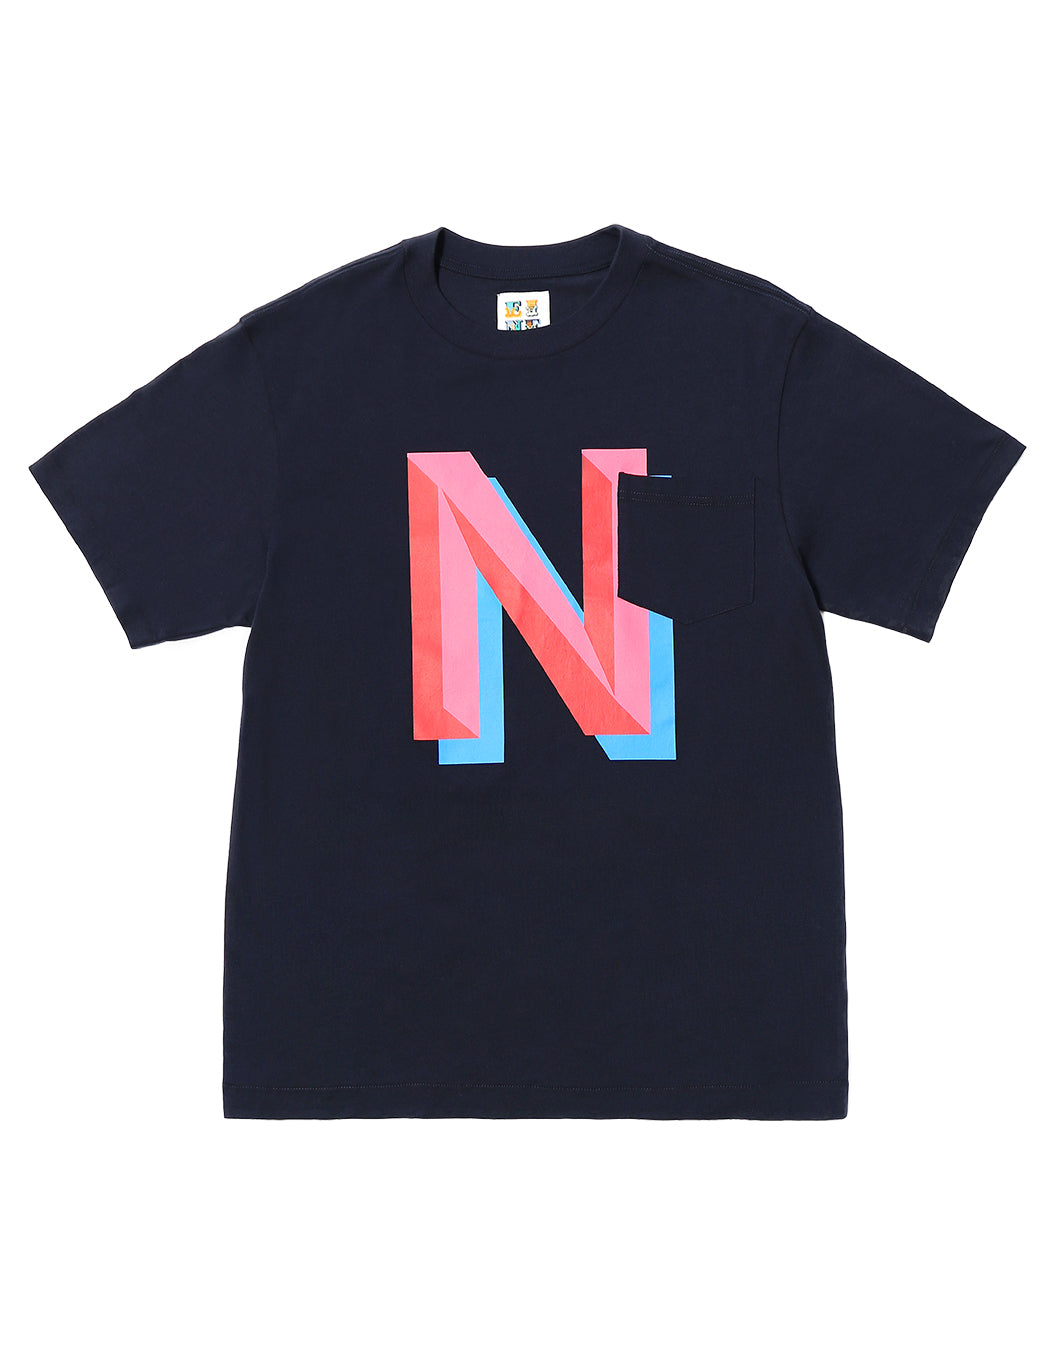 Gaspipe N Pocket S/S T-Shirt - Navy - Eine London by Ben Eine